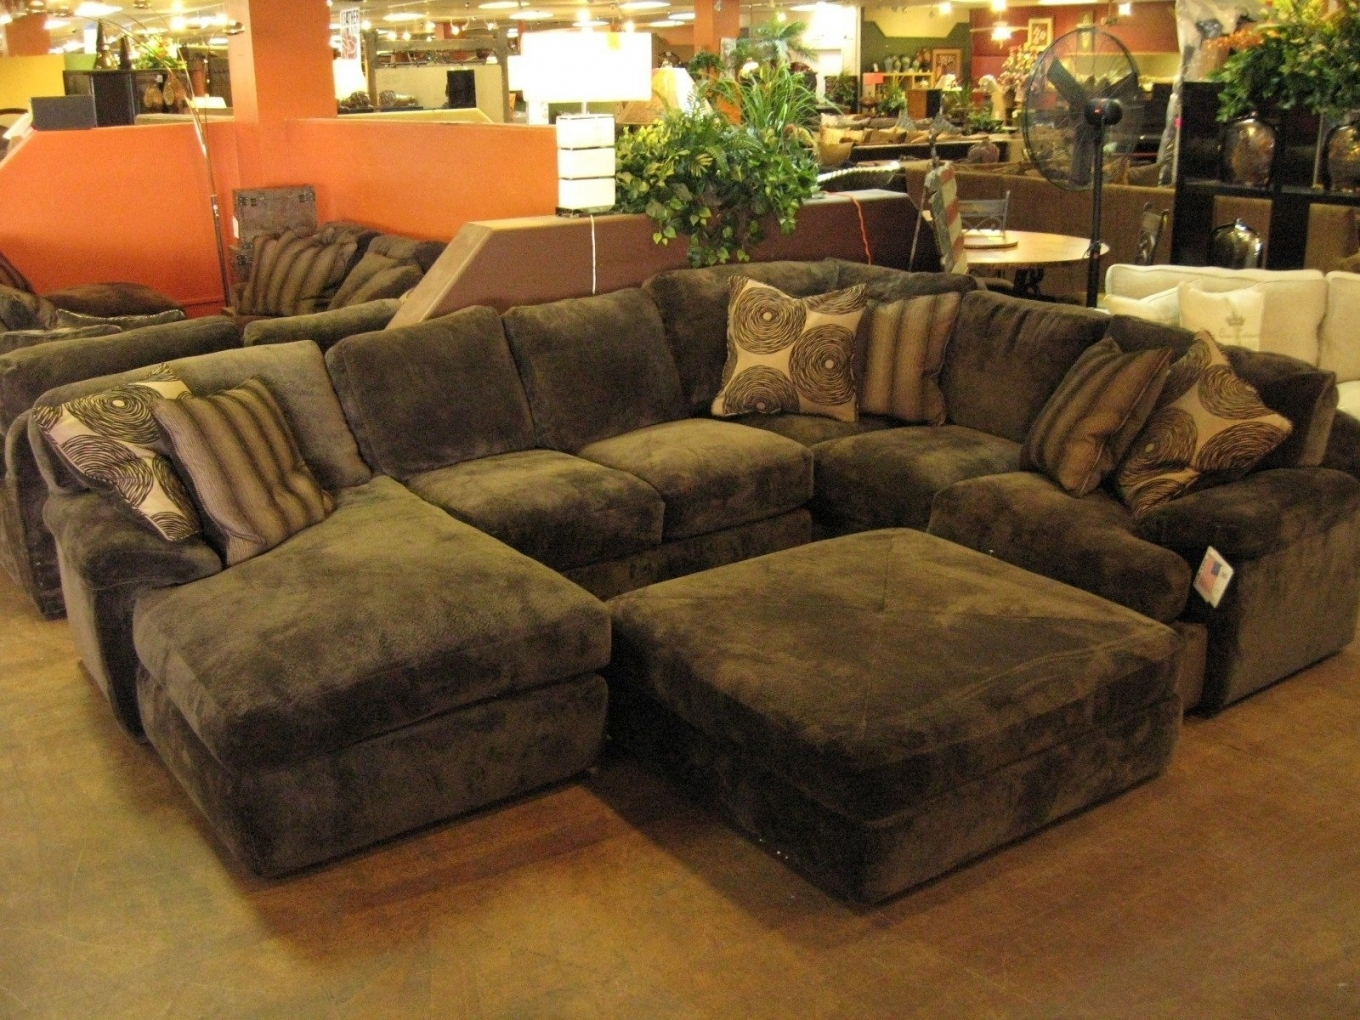 Coolest Comfortable Sectional Sofas Iel14 #664 With Regard To Comfortable Sectional Sofas (View 7 of 10)